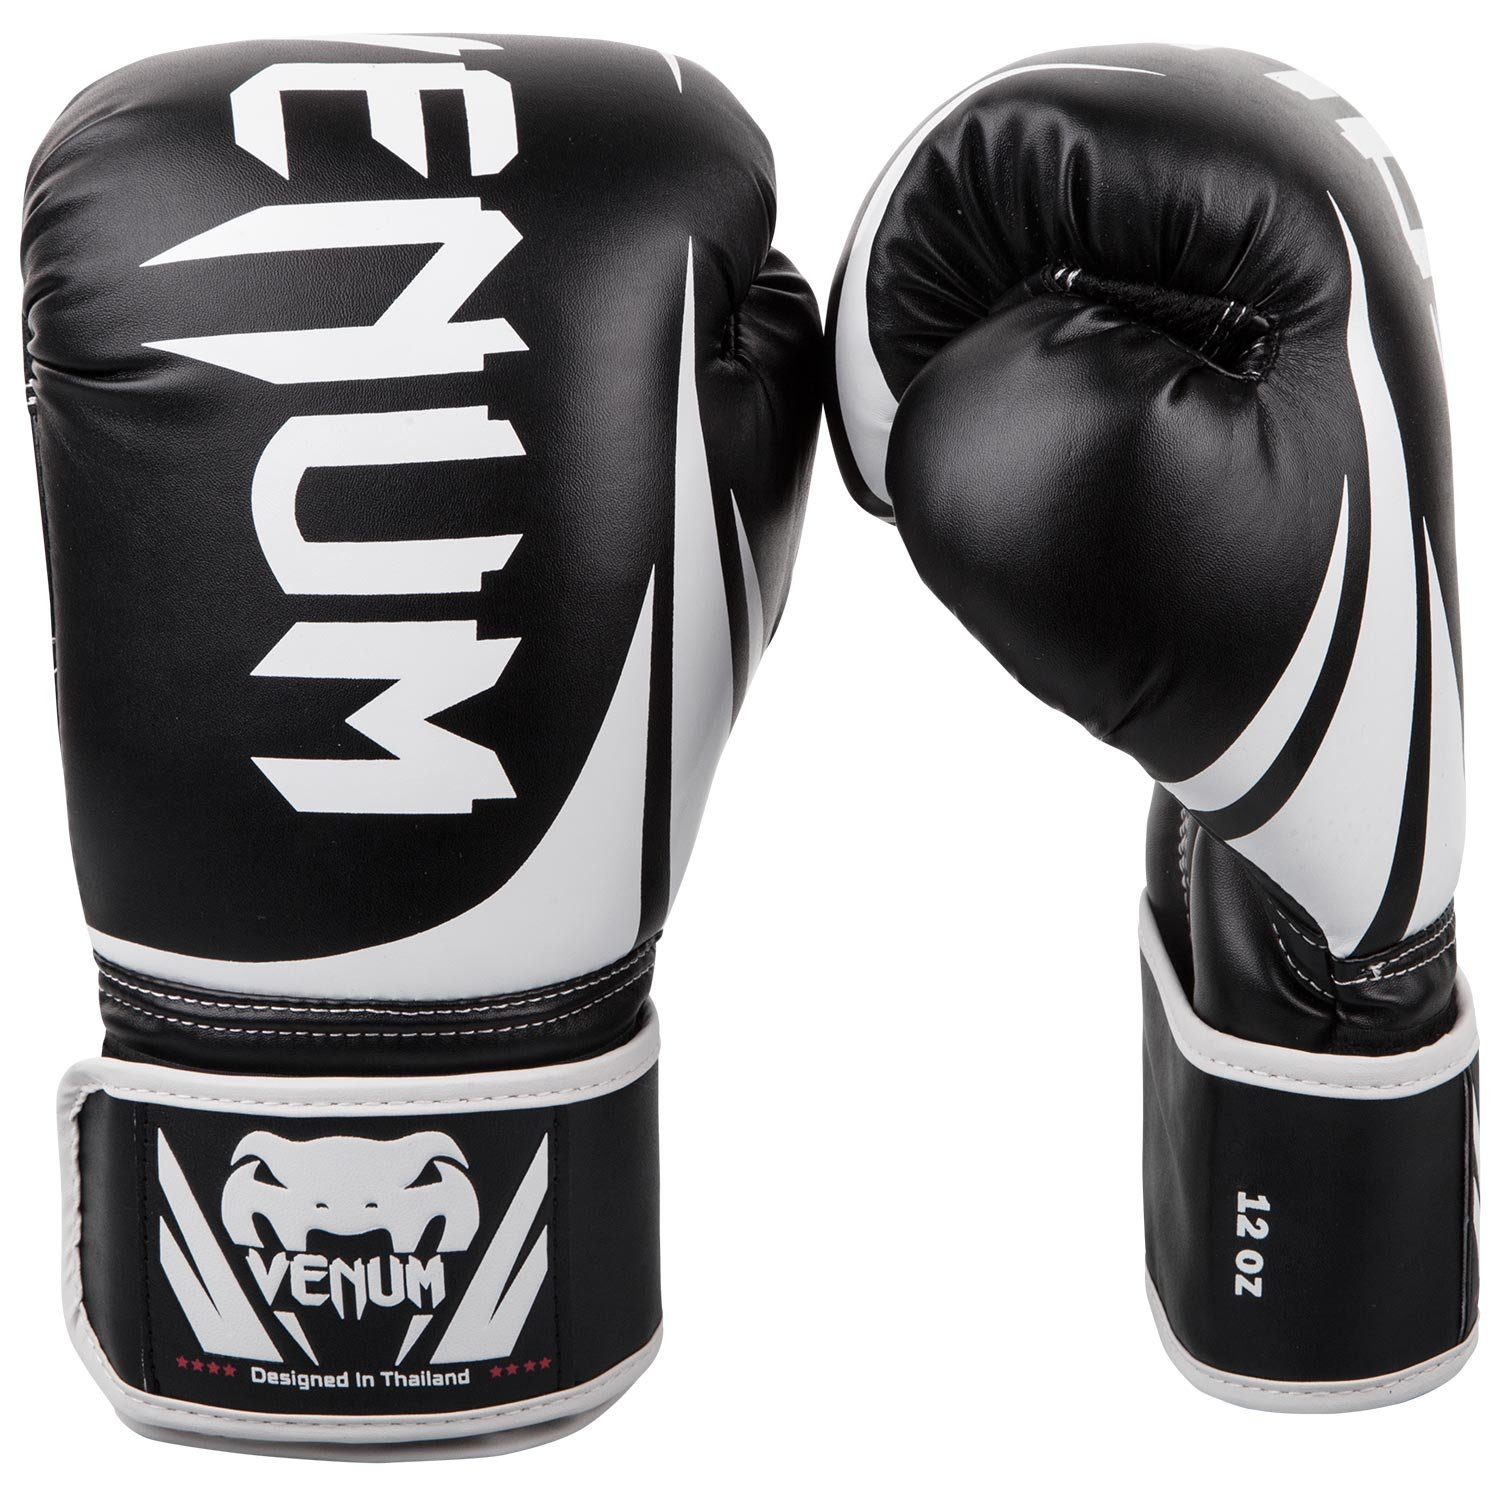 Top 16 Best Boxing Gloves (2019 Reviews & Buying Guide) 4